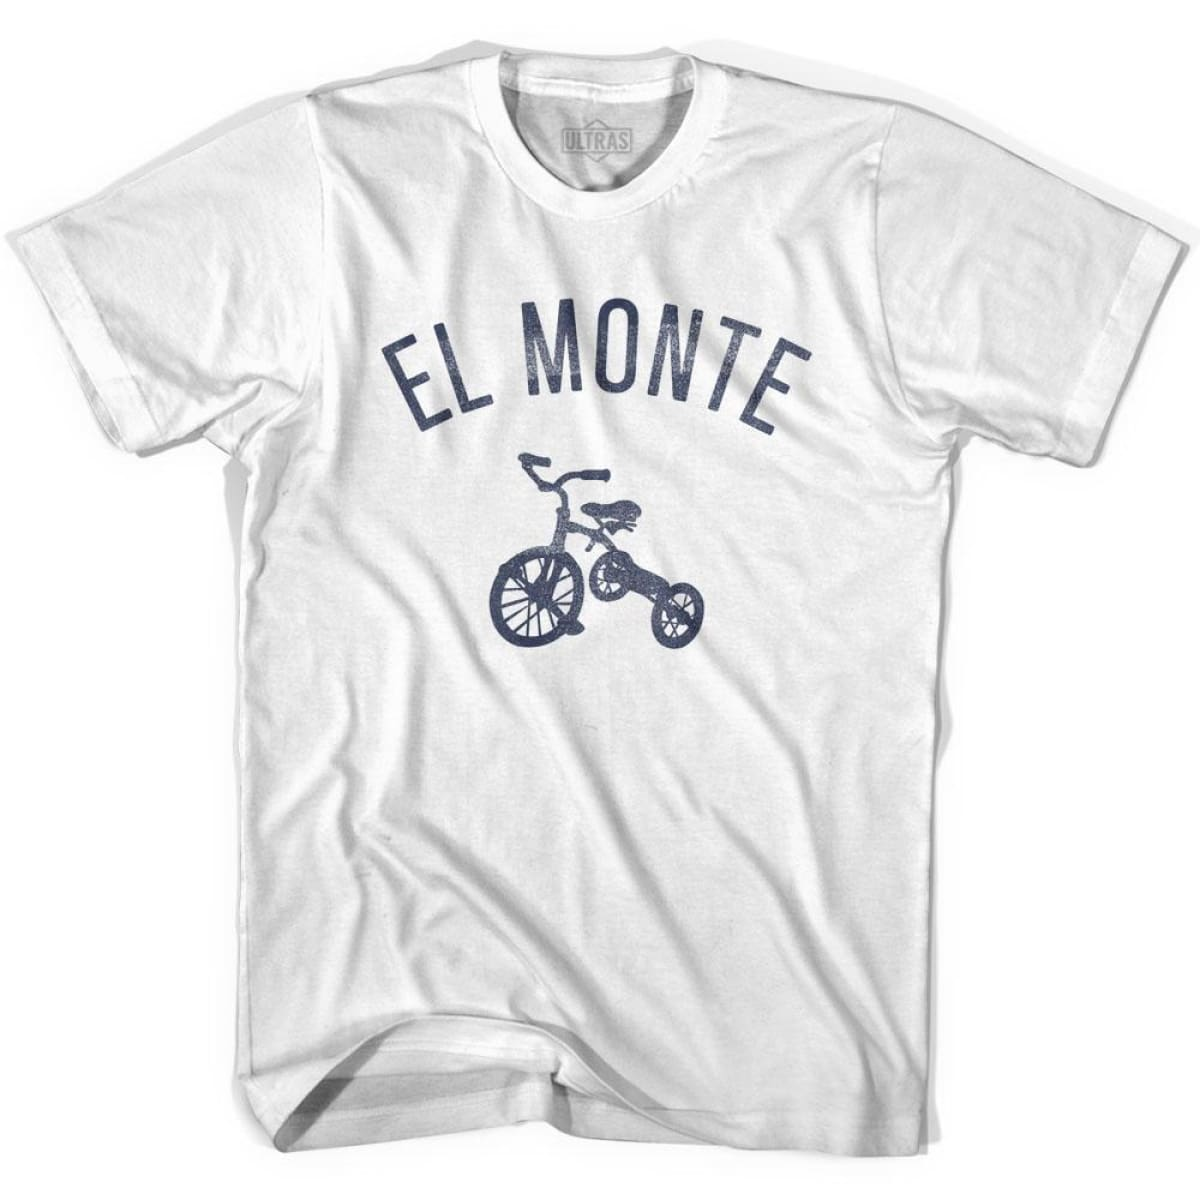 El Monte City Tricycle Womens Cotton T-shirt - Tricycle City